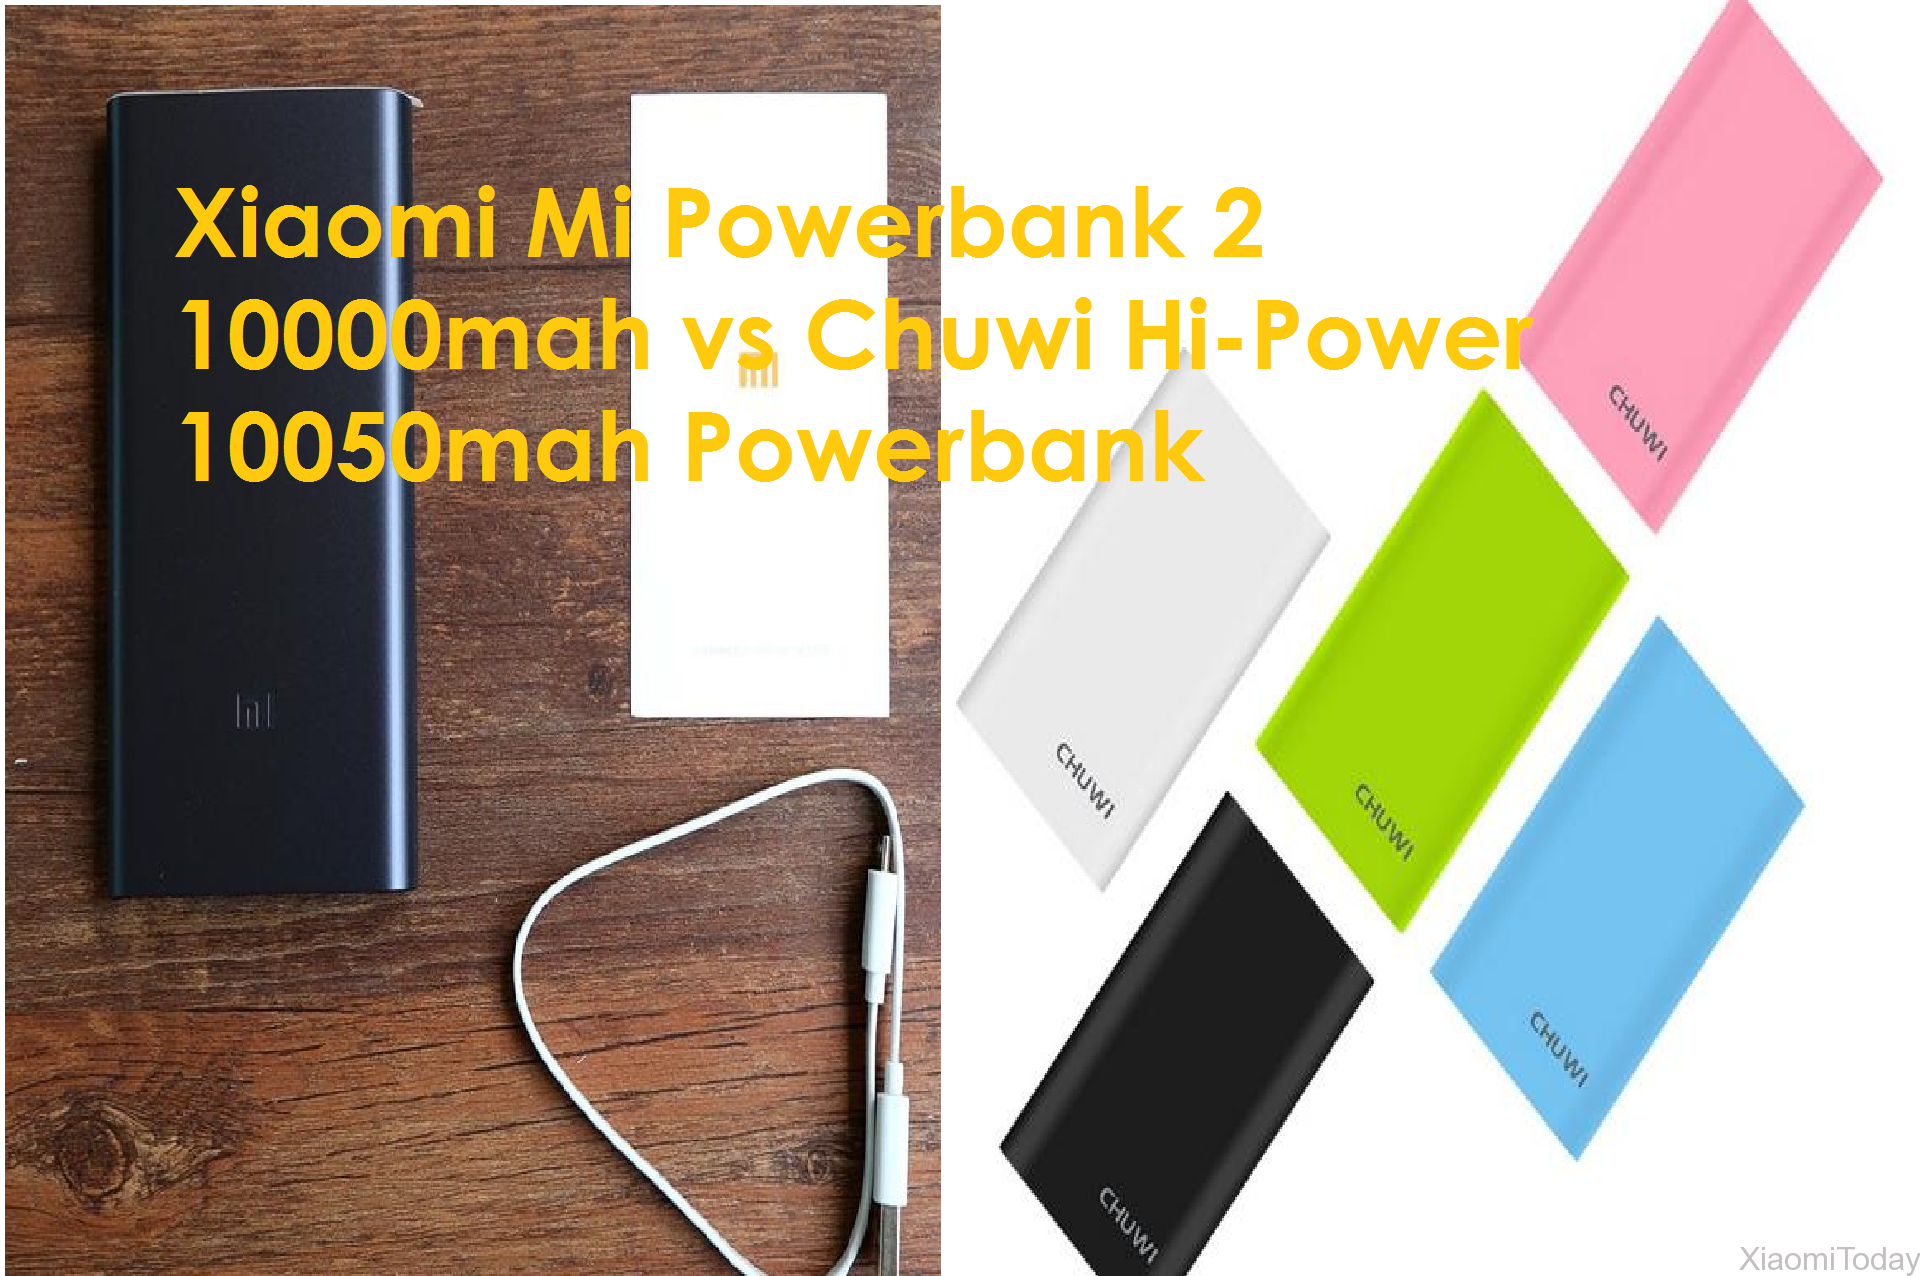 Xiaomi Mi Powerbank 2 10000mah vs Chuwi Hi-Power 10050mah Powerbank